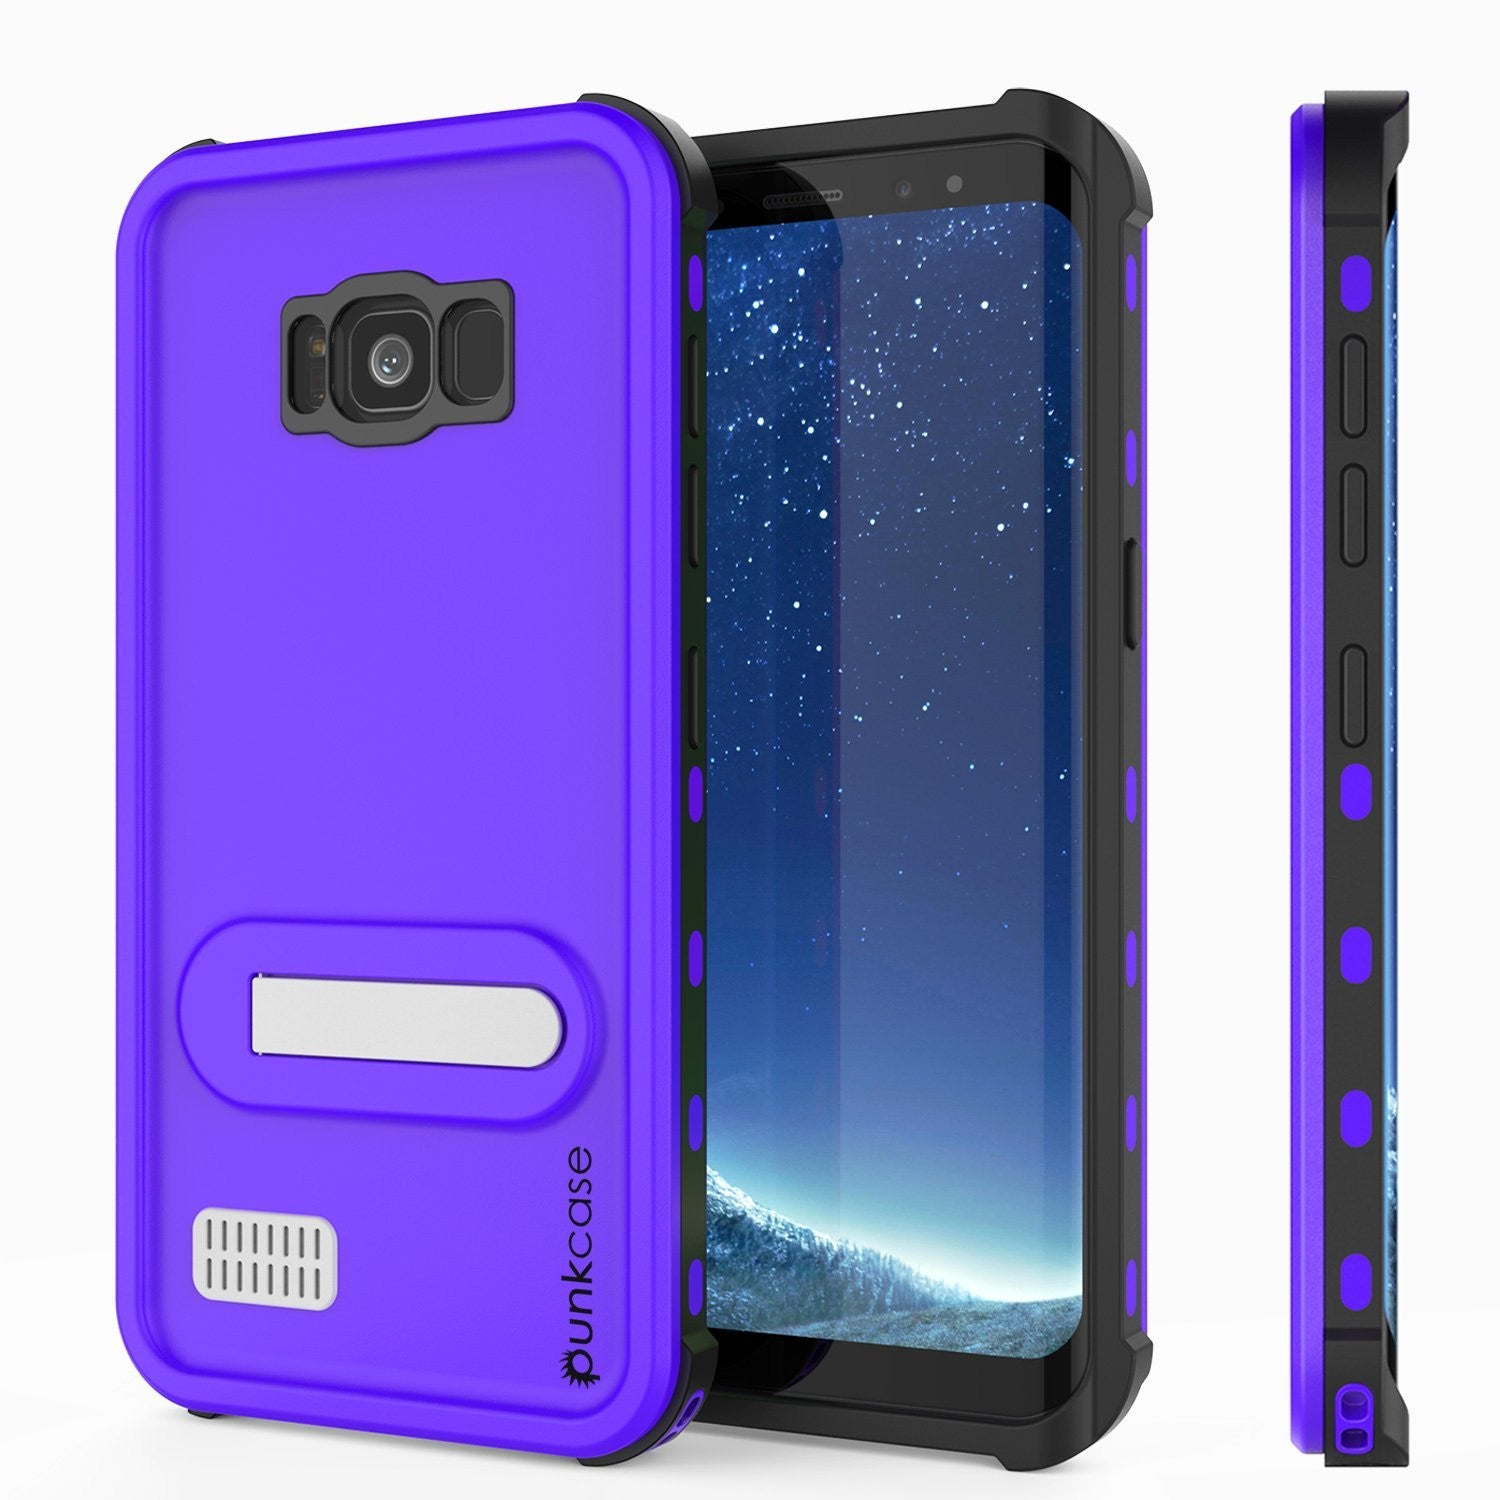 Galaxy S8 Plus Waterproof Case, Punkcase [KickStud Series] [Slim Fit] [IP68 Certified] [Shockproof] [Snowproof] Armor Cover [PURPLE]